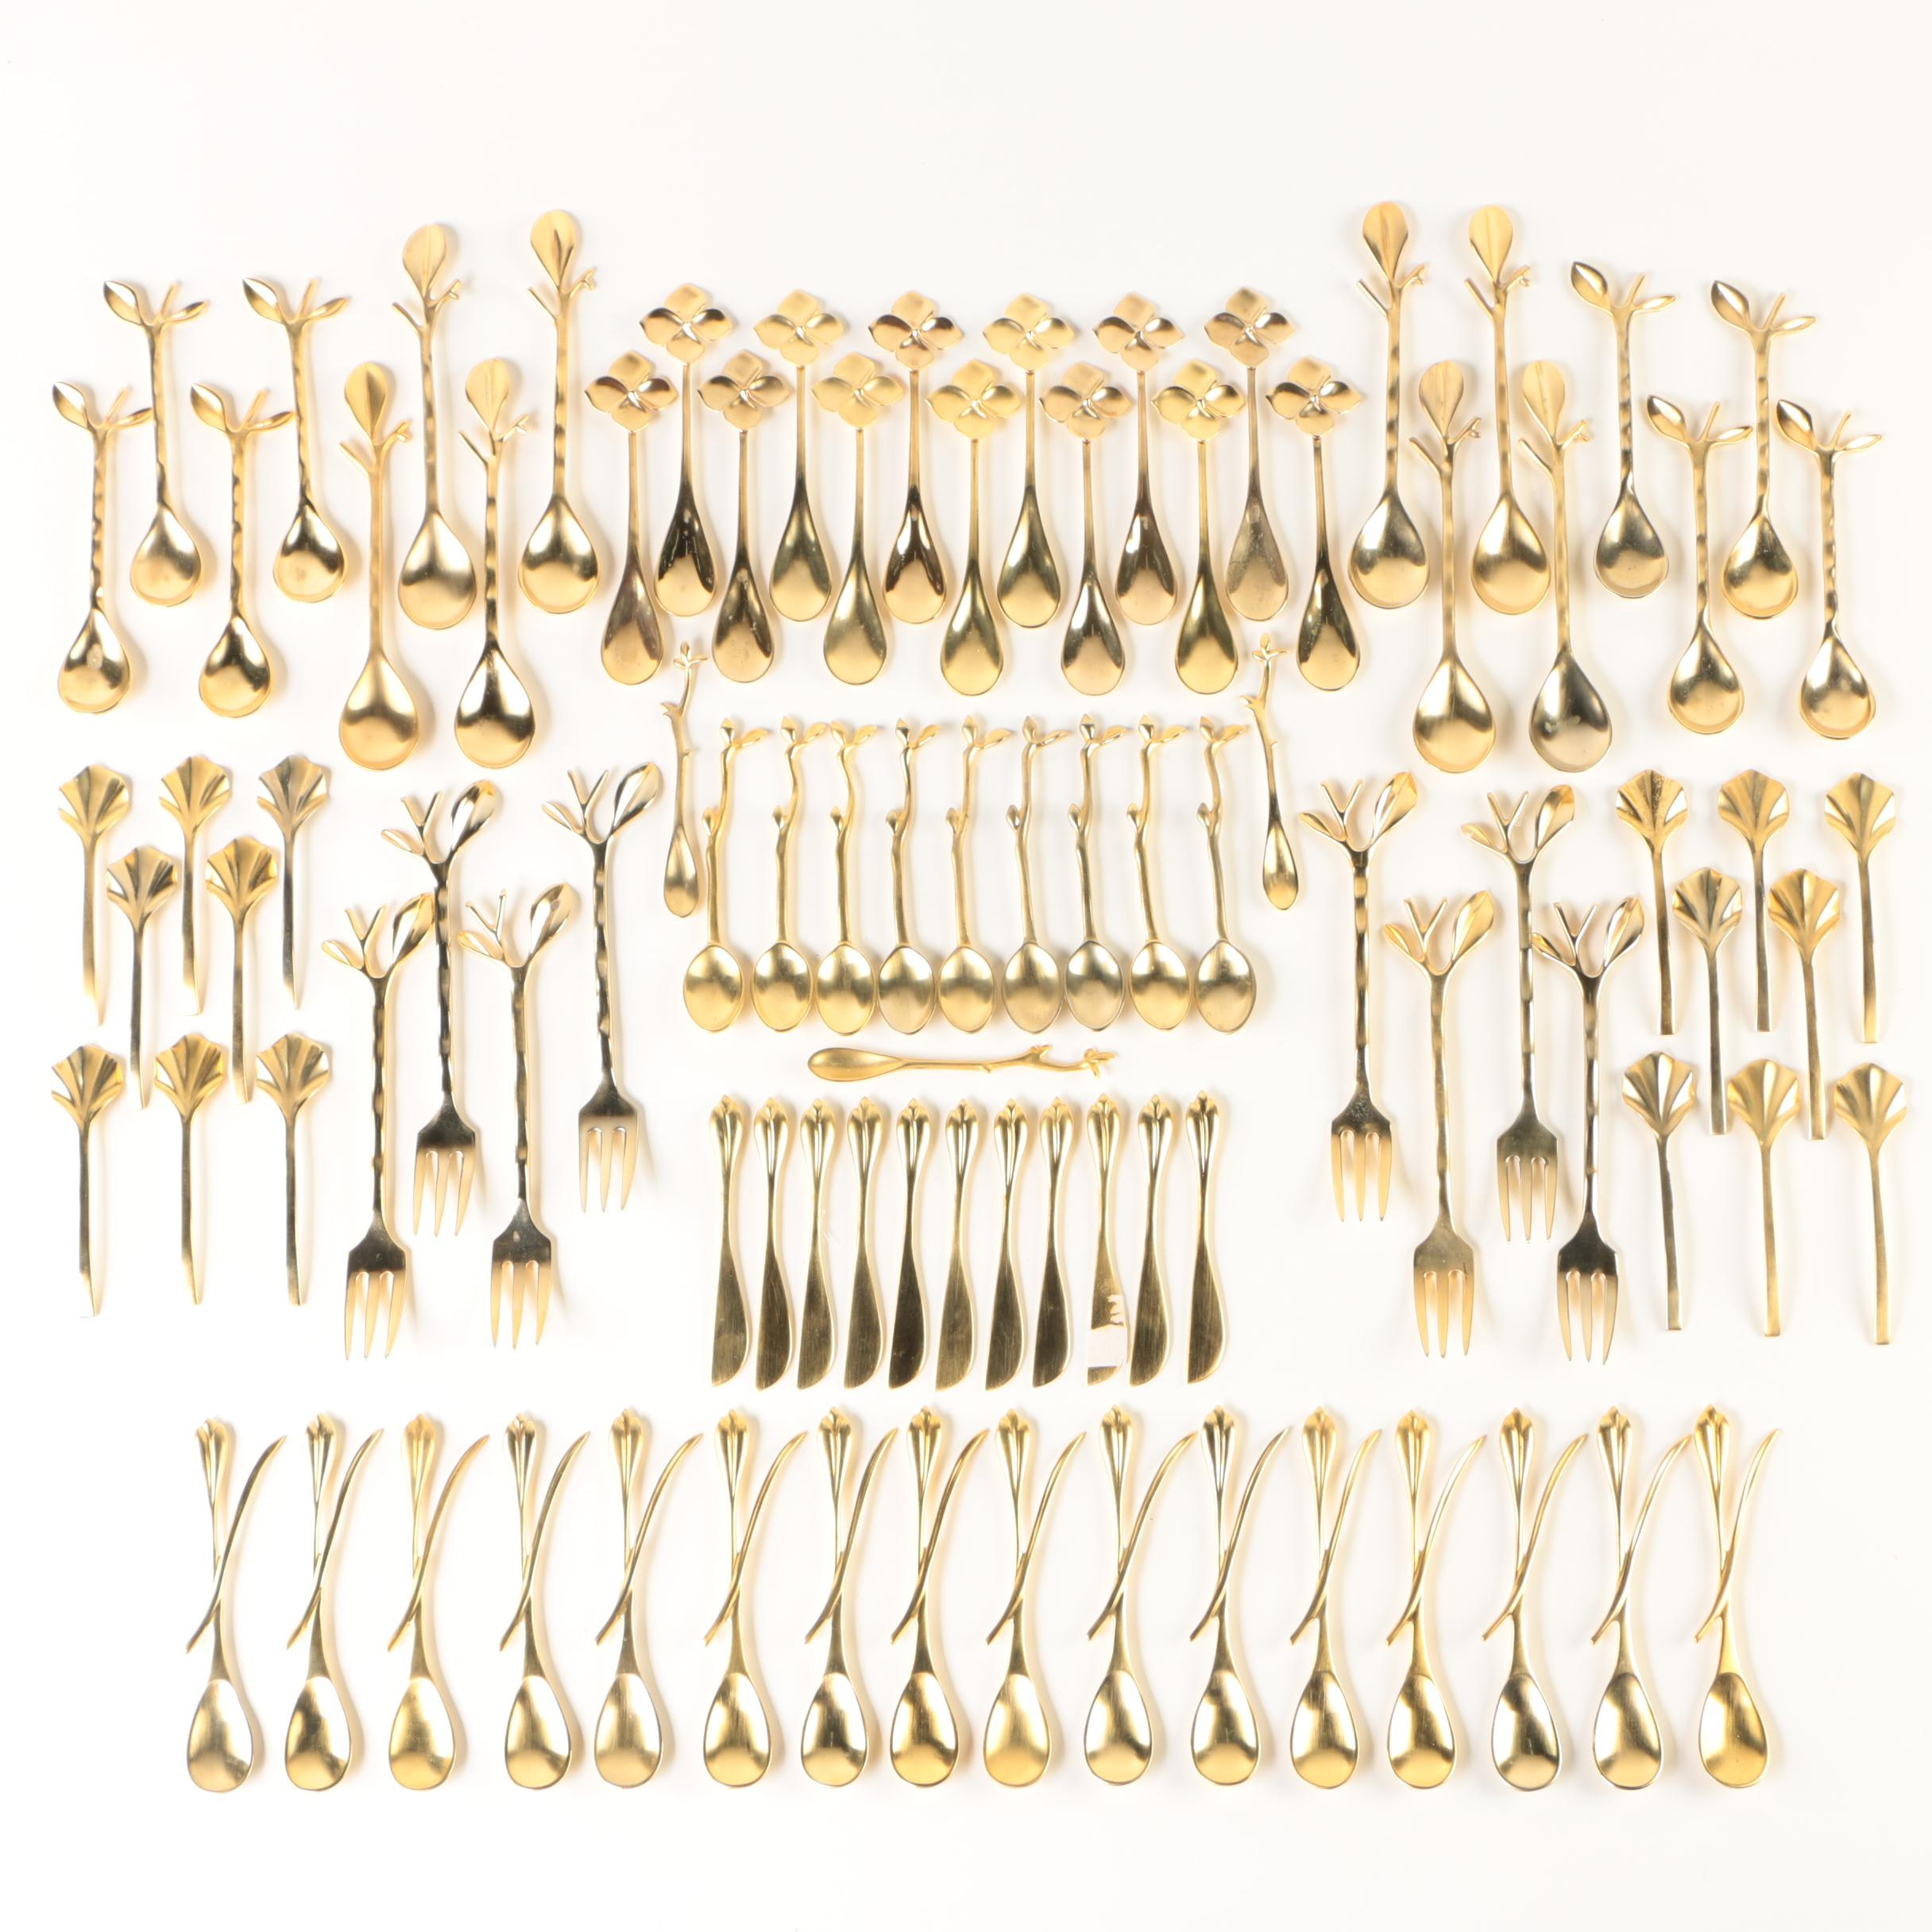 Blue Leaves French Nature-Inspired 24K Gold-Plated Brass Flatware